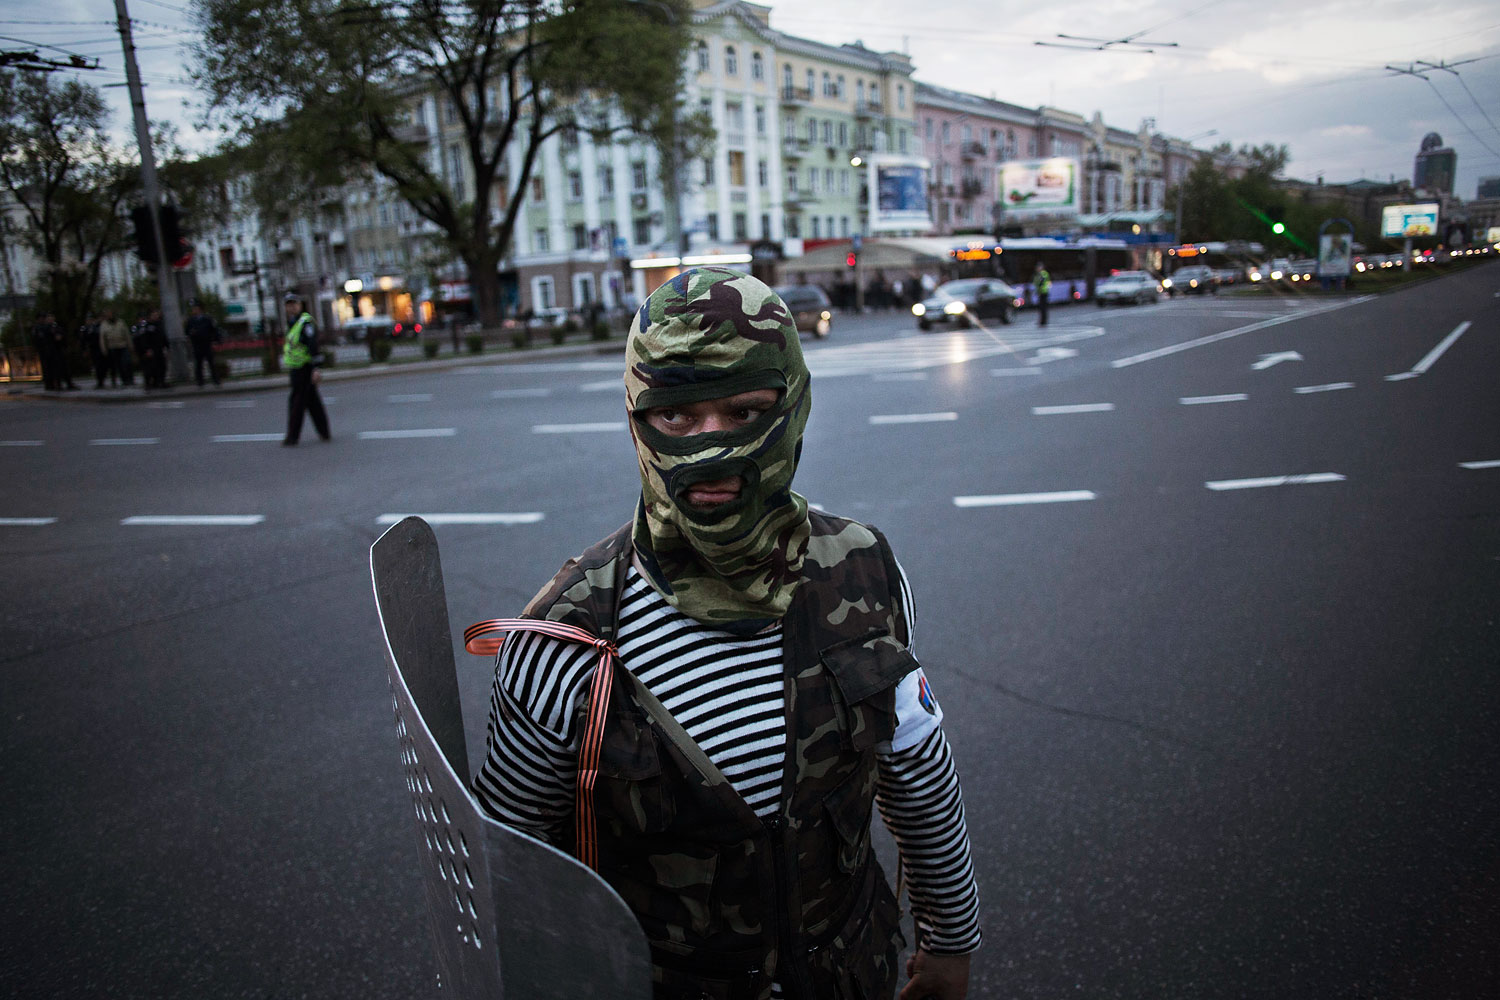 A pro-Russian activist holds a shield after clashing with pro-Ukrainians during a pro-Ukraine rally in Donetsk, Ukraine, on Monday, April 28, 2014